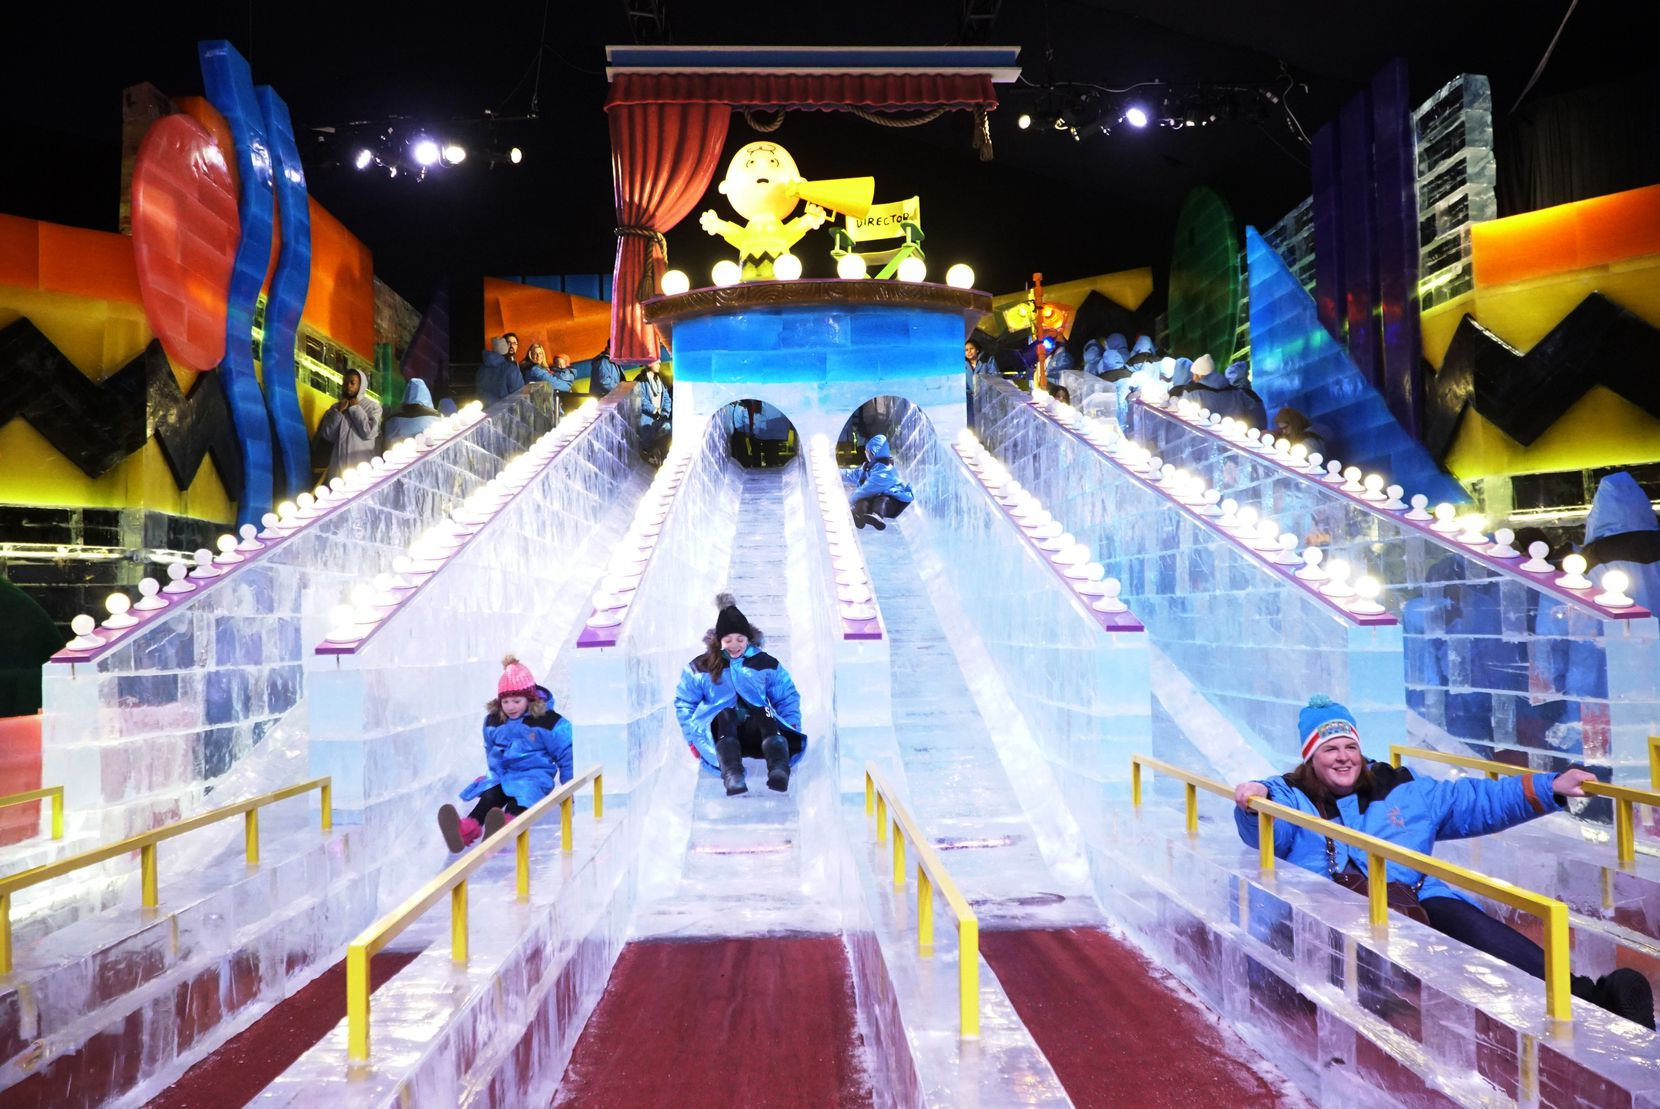 "For Gaylord Texan's ""Ice!"" exhibit, about 2 million pounds of ice has been hand-carved into sculptures of Charlie Brown and his friends, festive holiday scenes and five two-story ice slides."